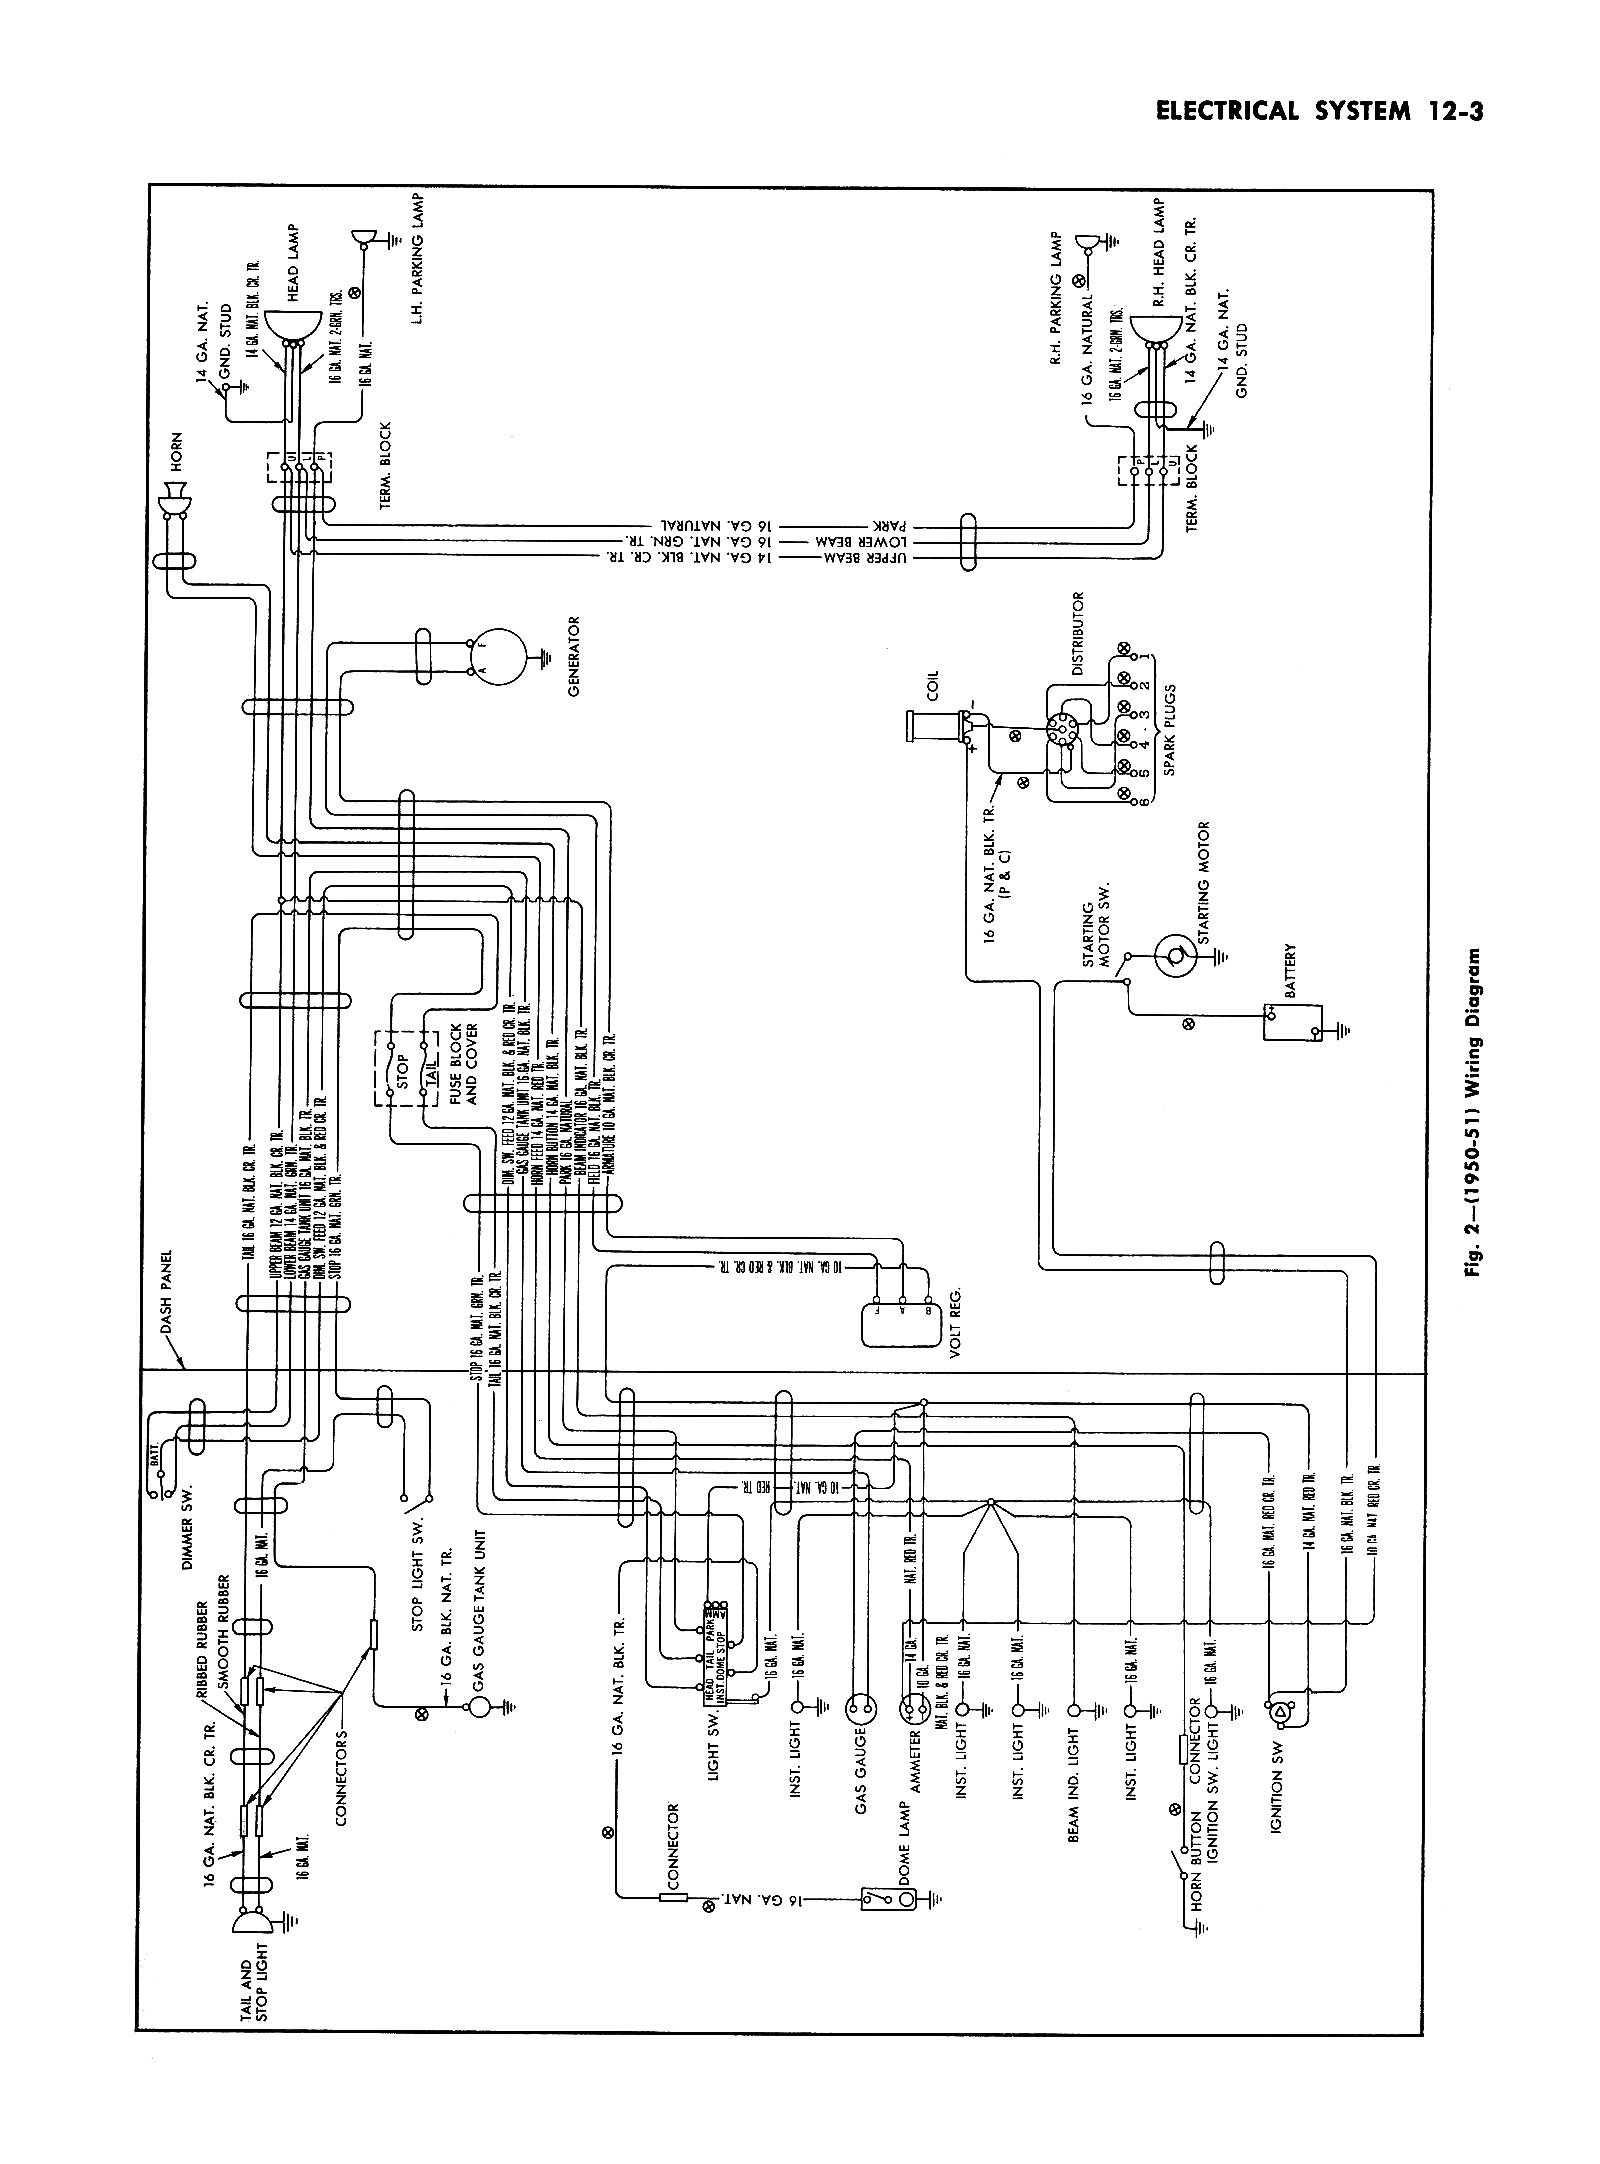 ignition circuit diagram for the 1946 55 de soto all models wiring